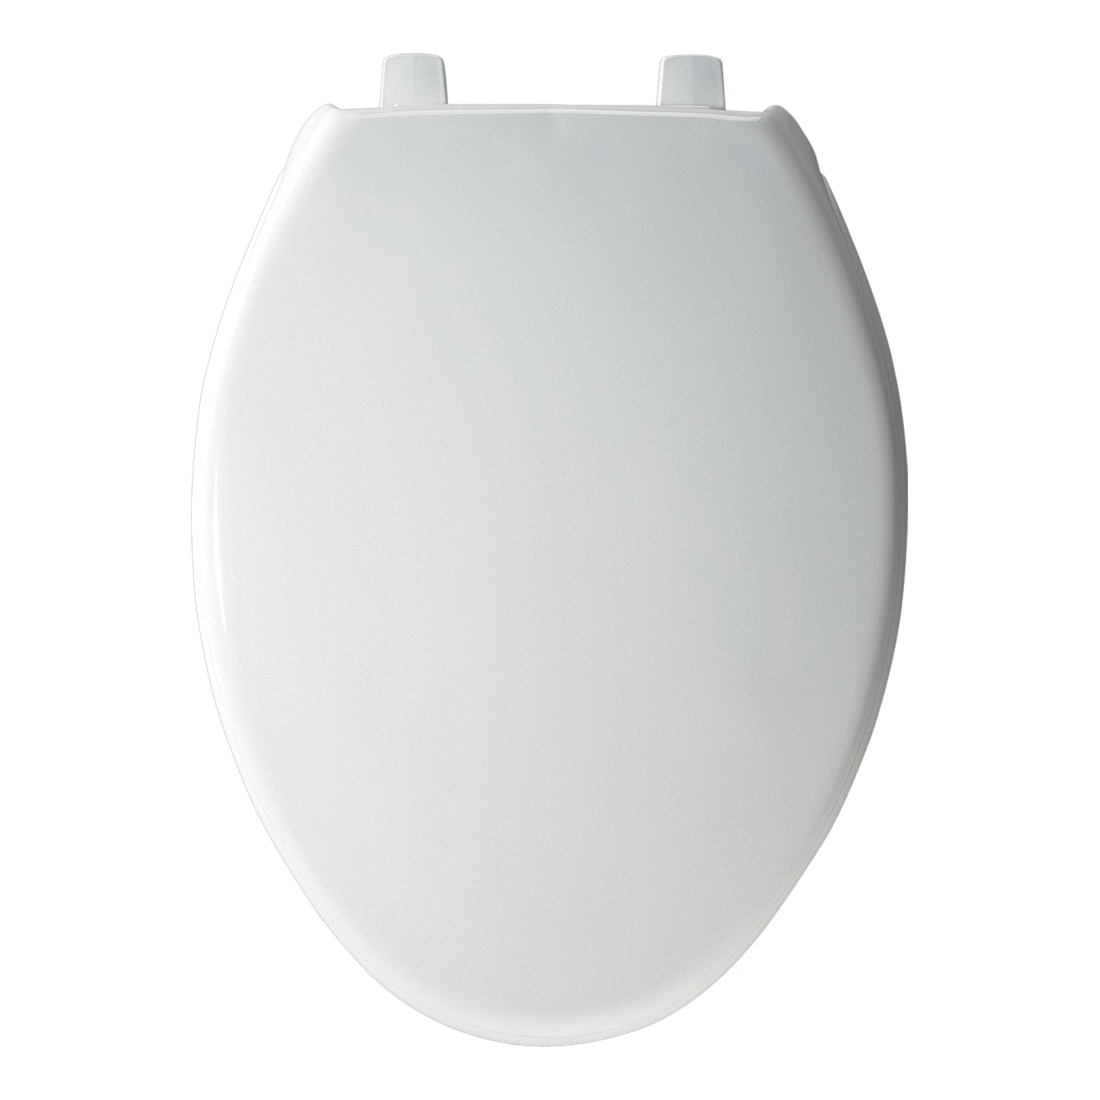 Church® 7F383SS 000 Heavy Duty Toilet Seat With Cover, Elongated Bowl, Closed Front, Plastic, White, Self-Sustaining Hinge, Domestic